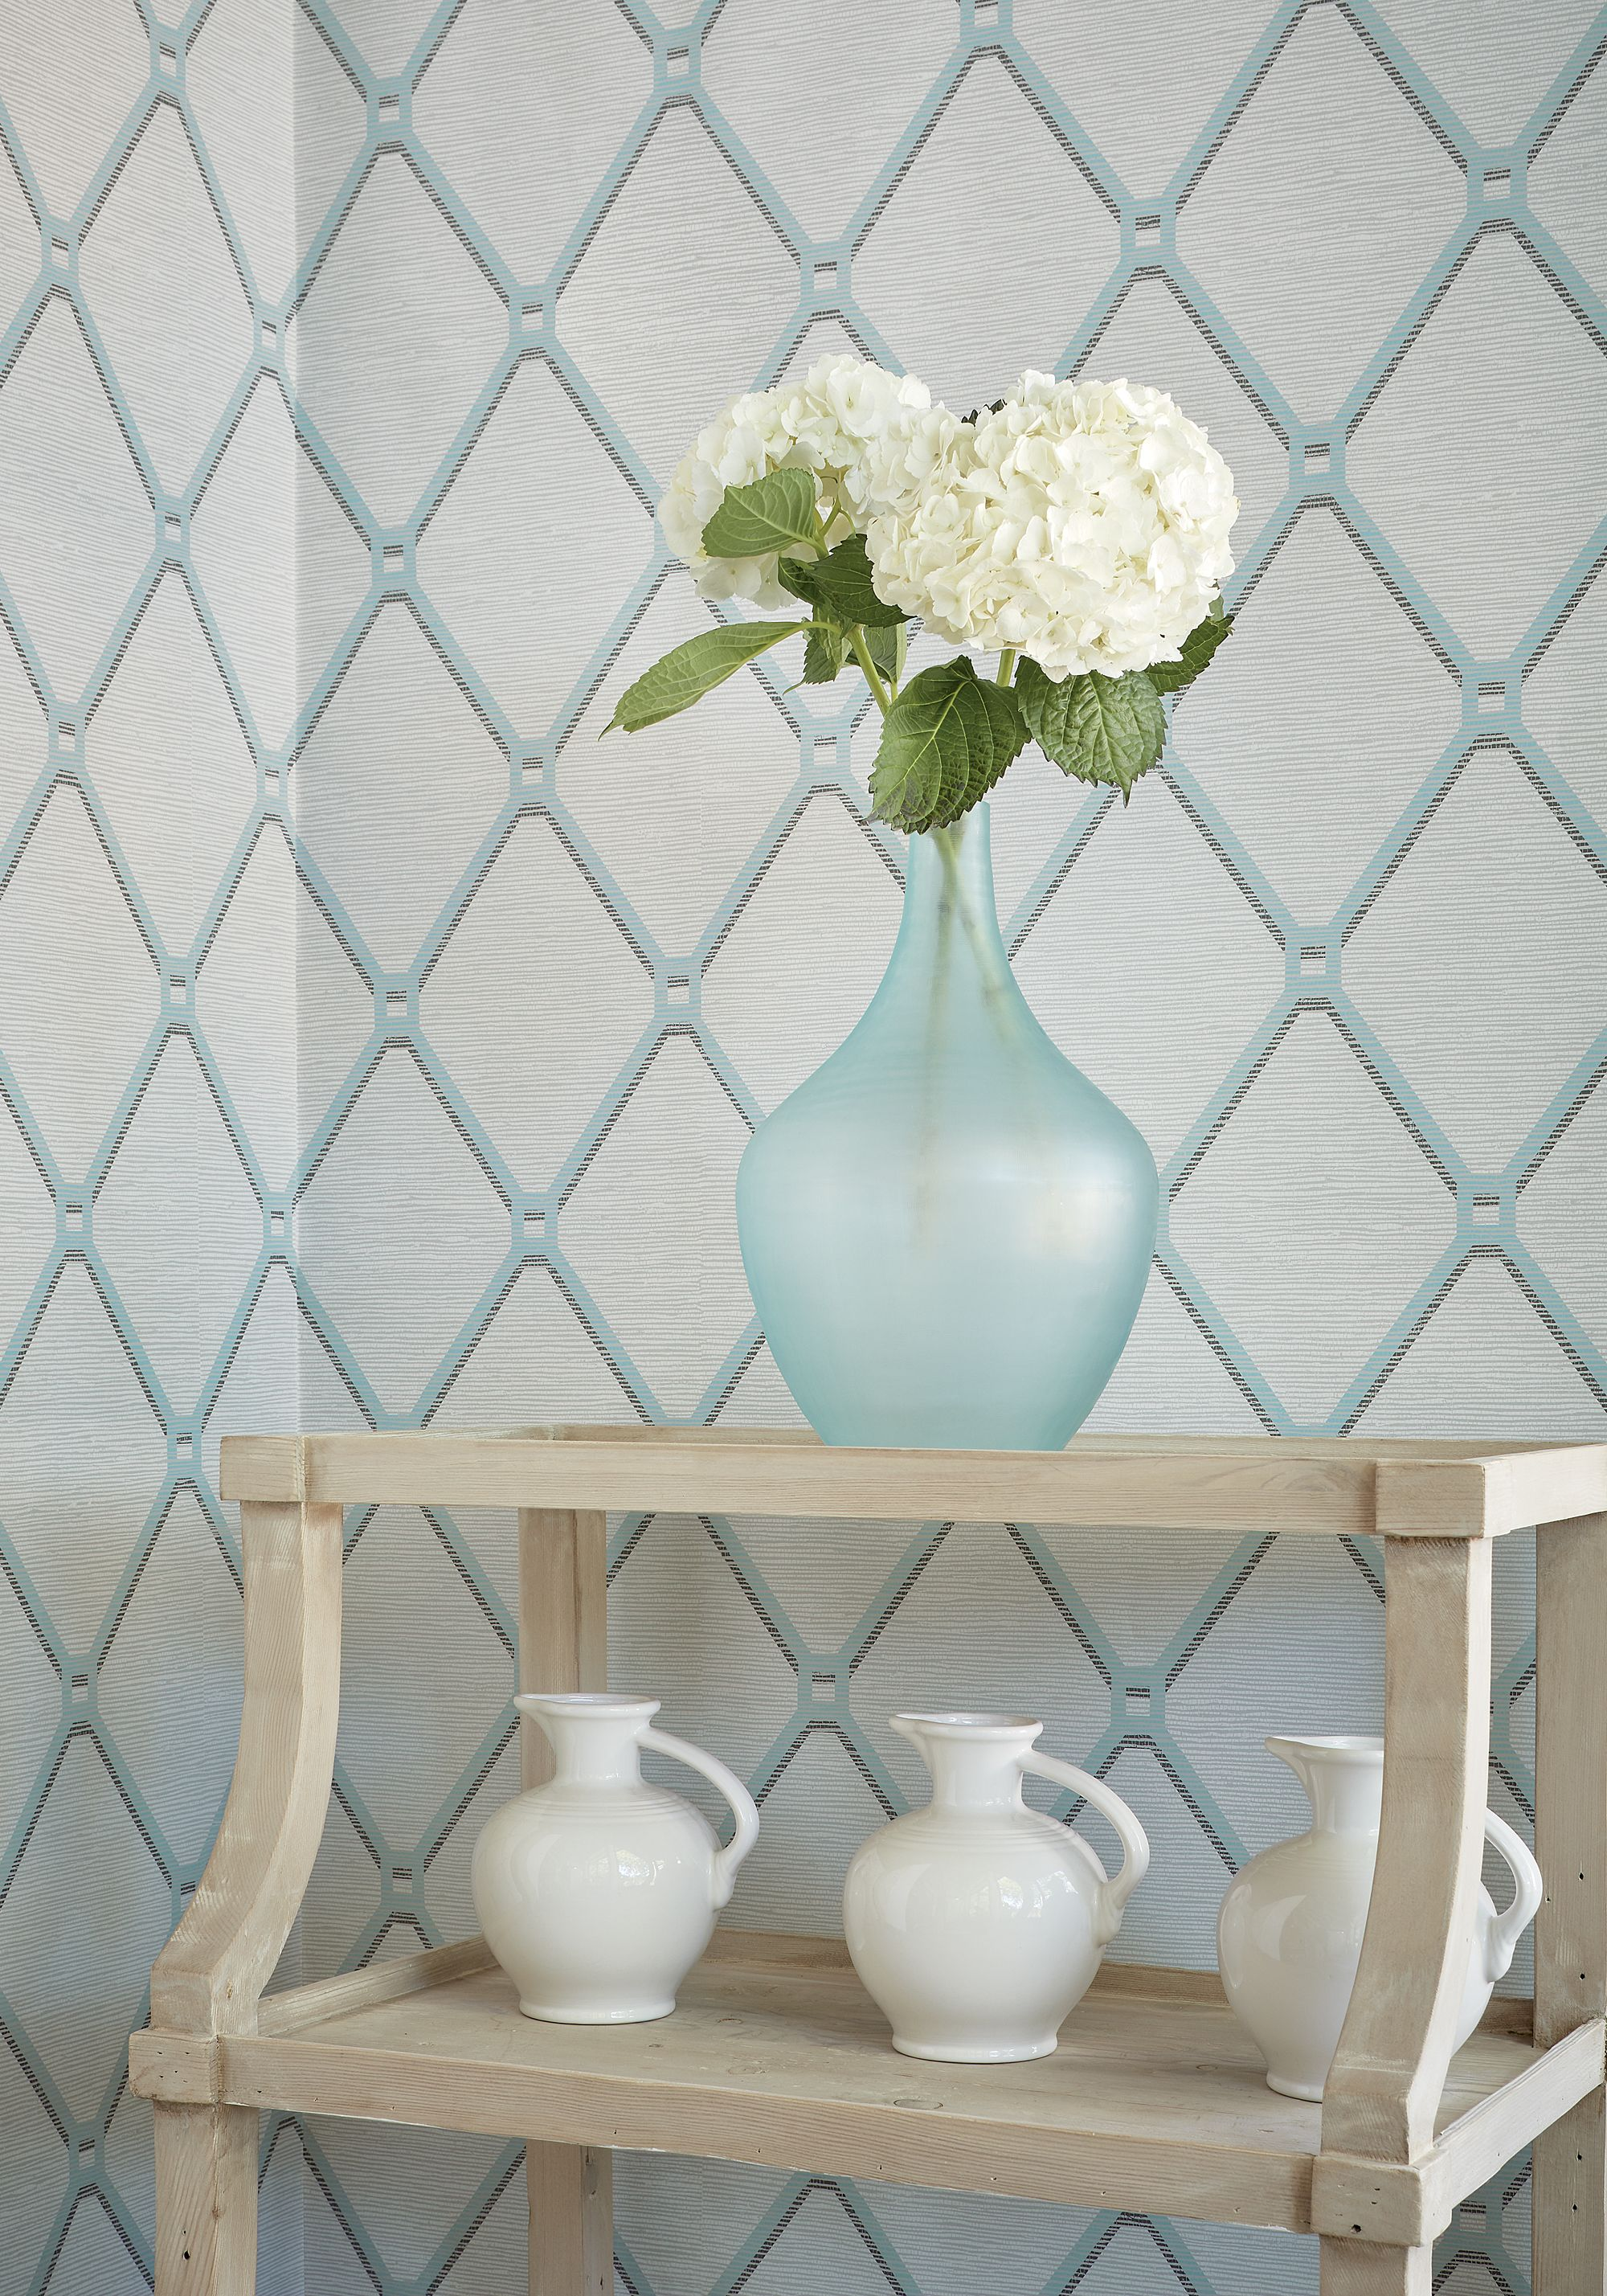 Easom trellis from surface resource collection trellis